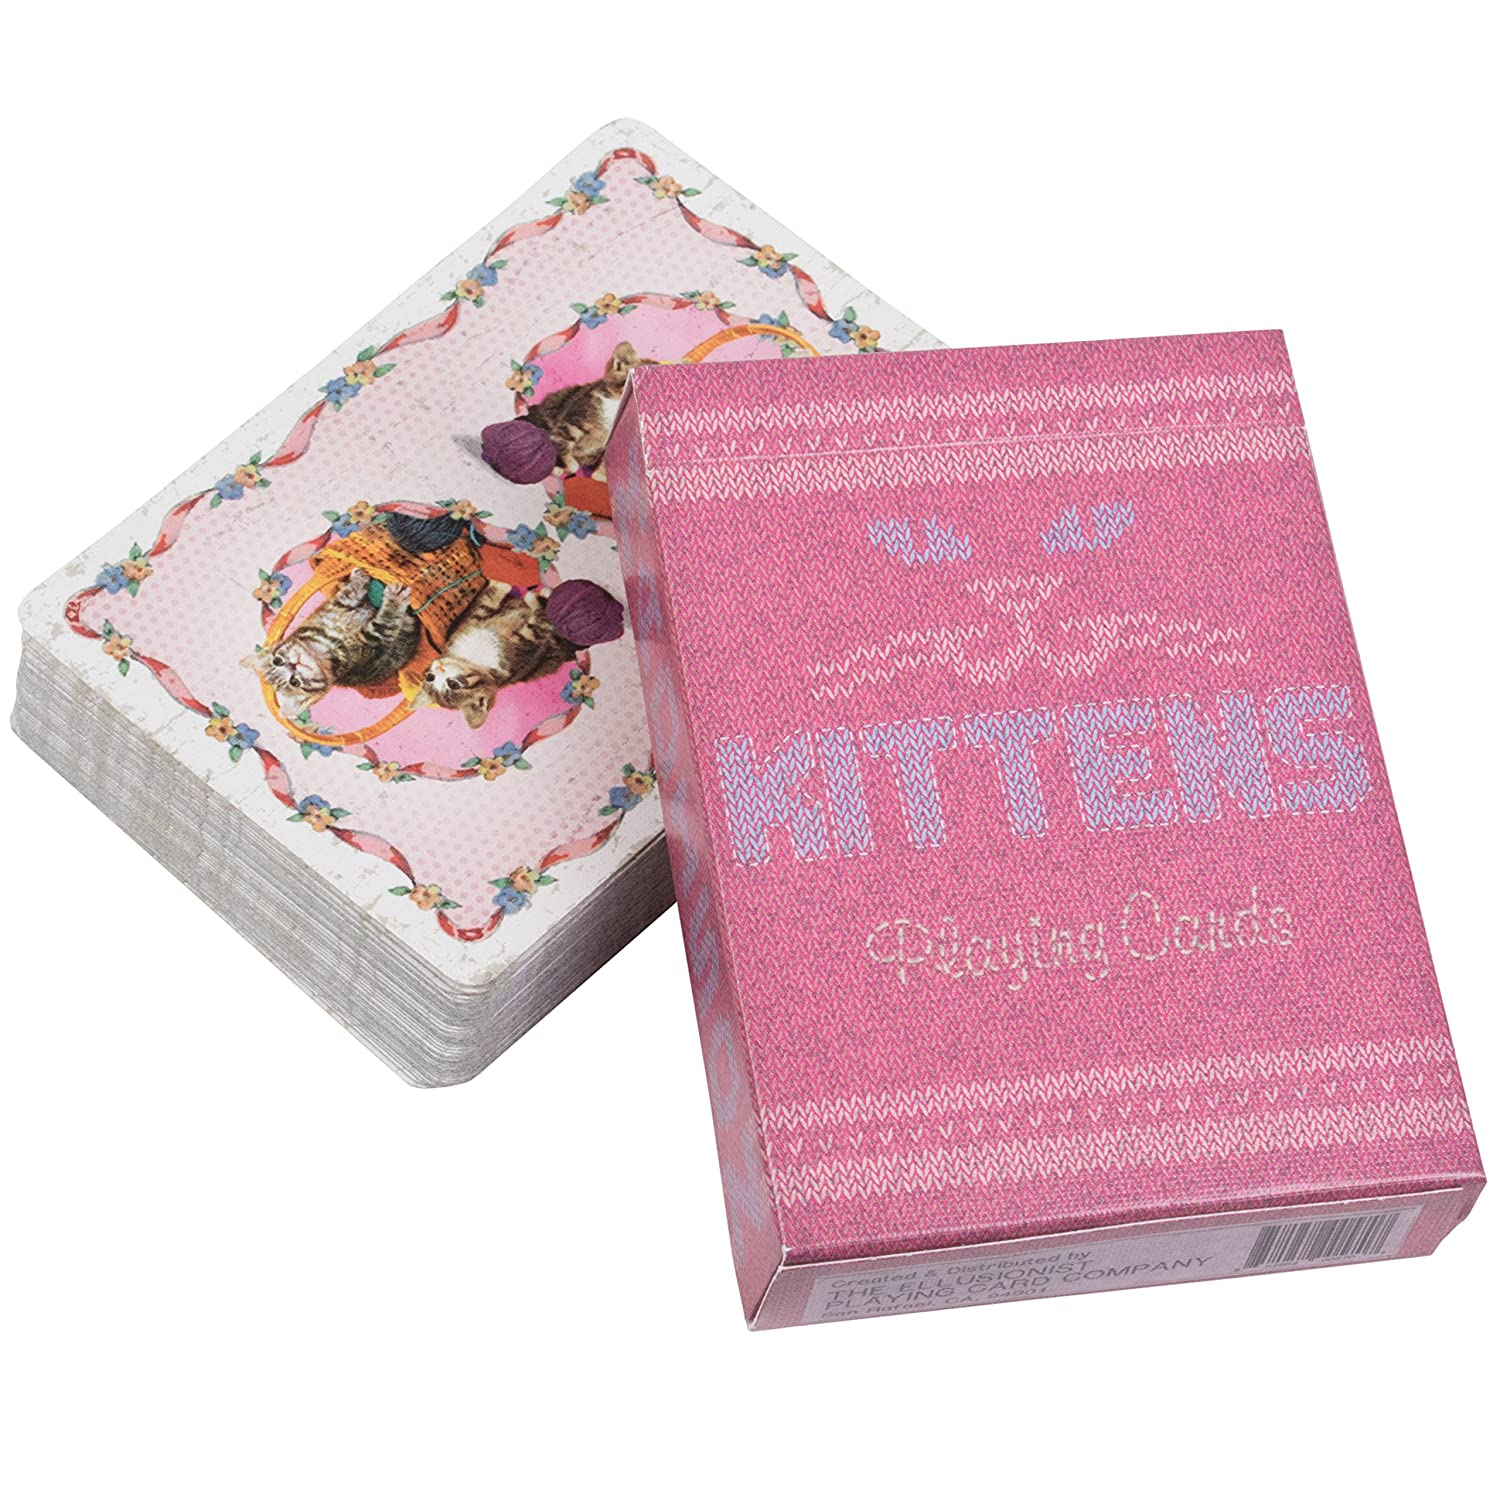 Amazon.com: Kittens Playing Cards Deck by Ellusionist - Designed by ...